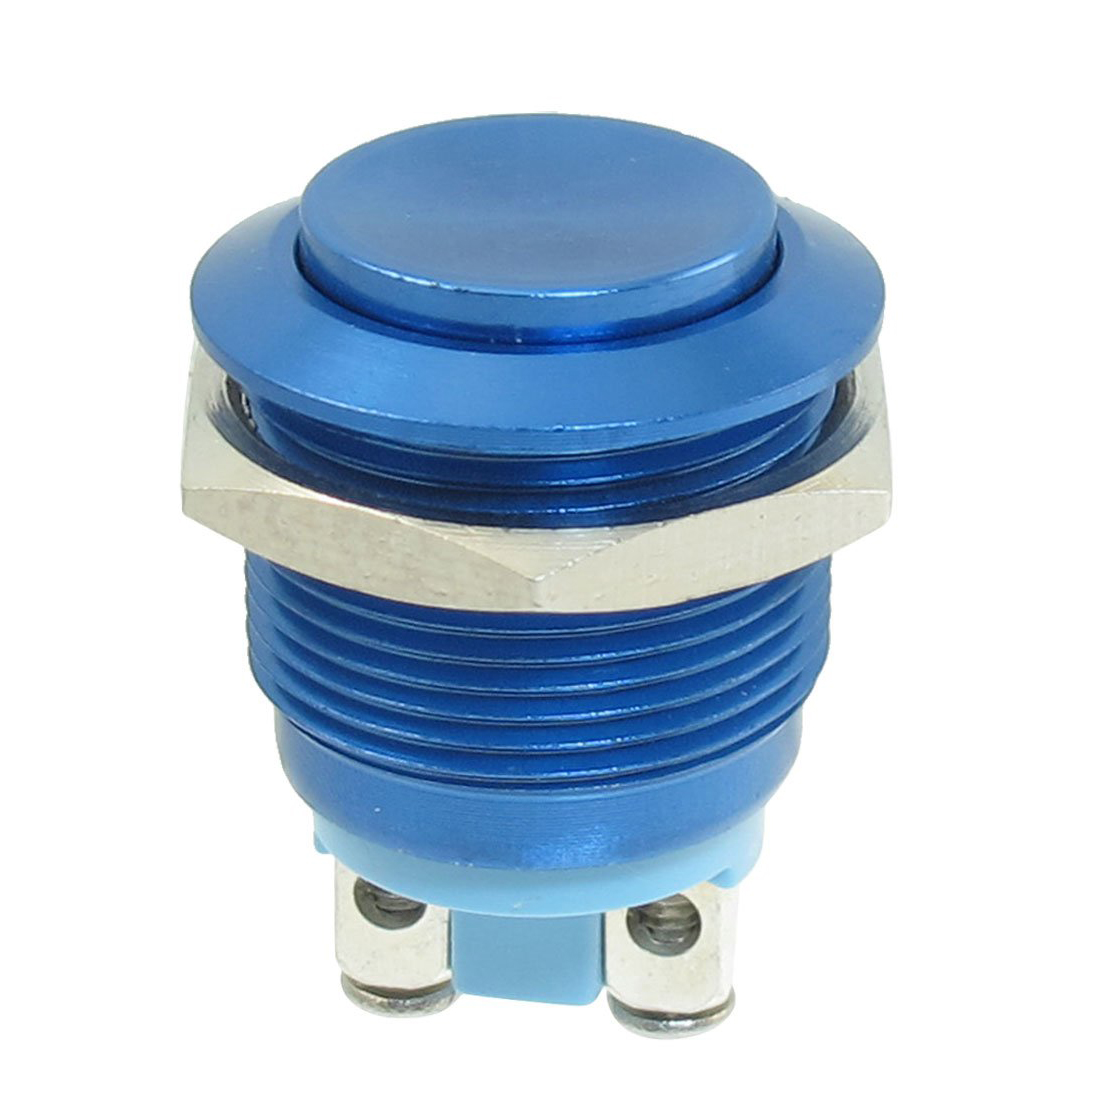 19mm Thread Momentary Stainless Steel Round Push Button Switch 250v On Off Relay Type Spst Contact 2 Screw Terminals This Metal Is Suitable For Diameter Mounting Hole